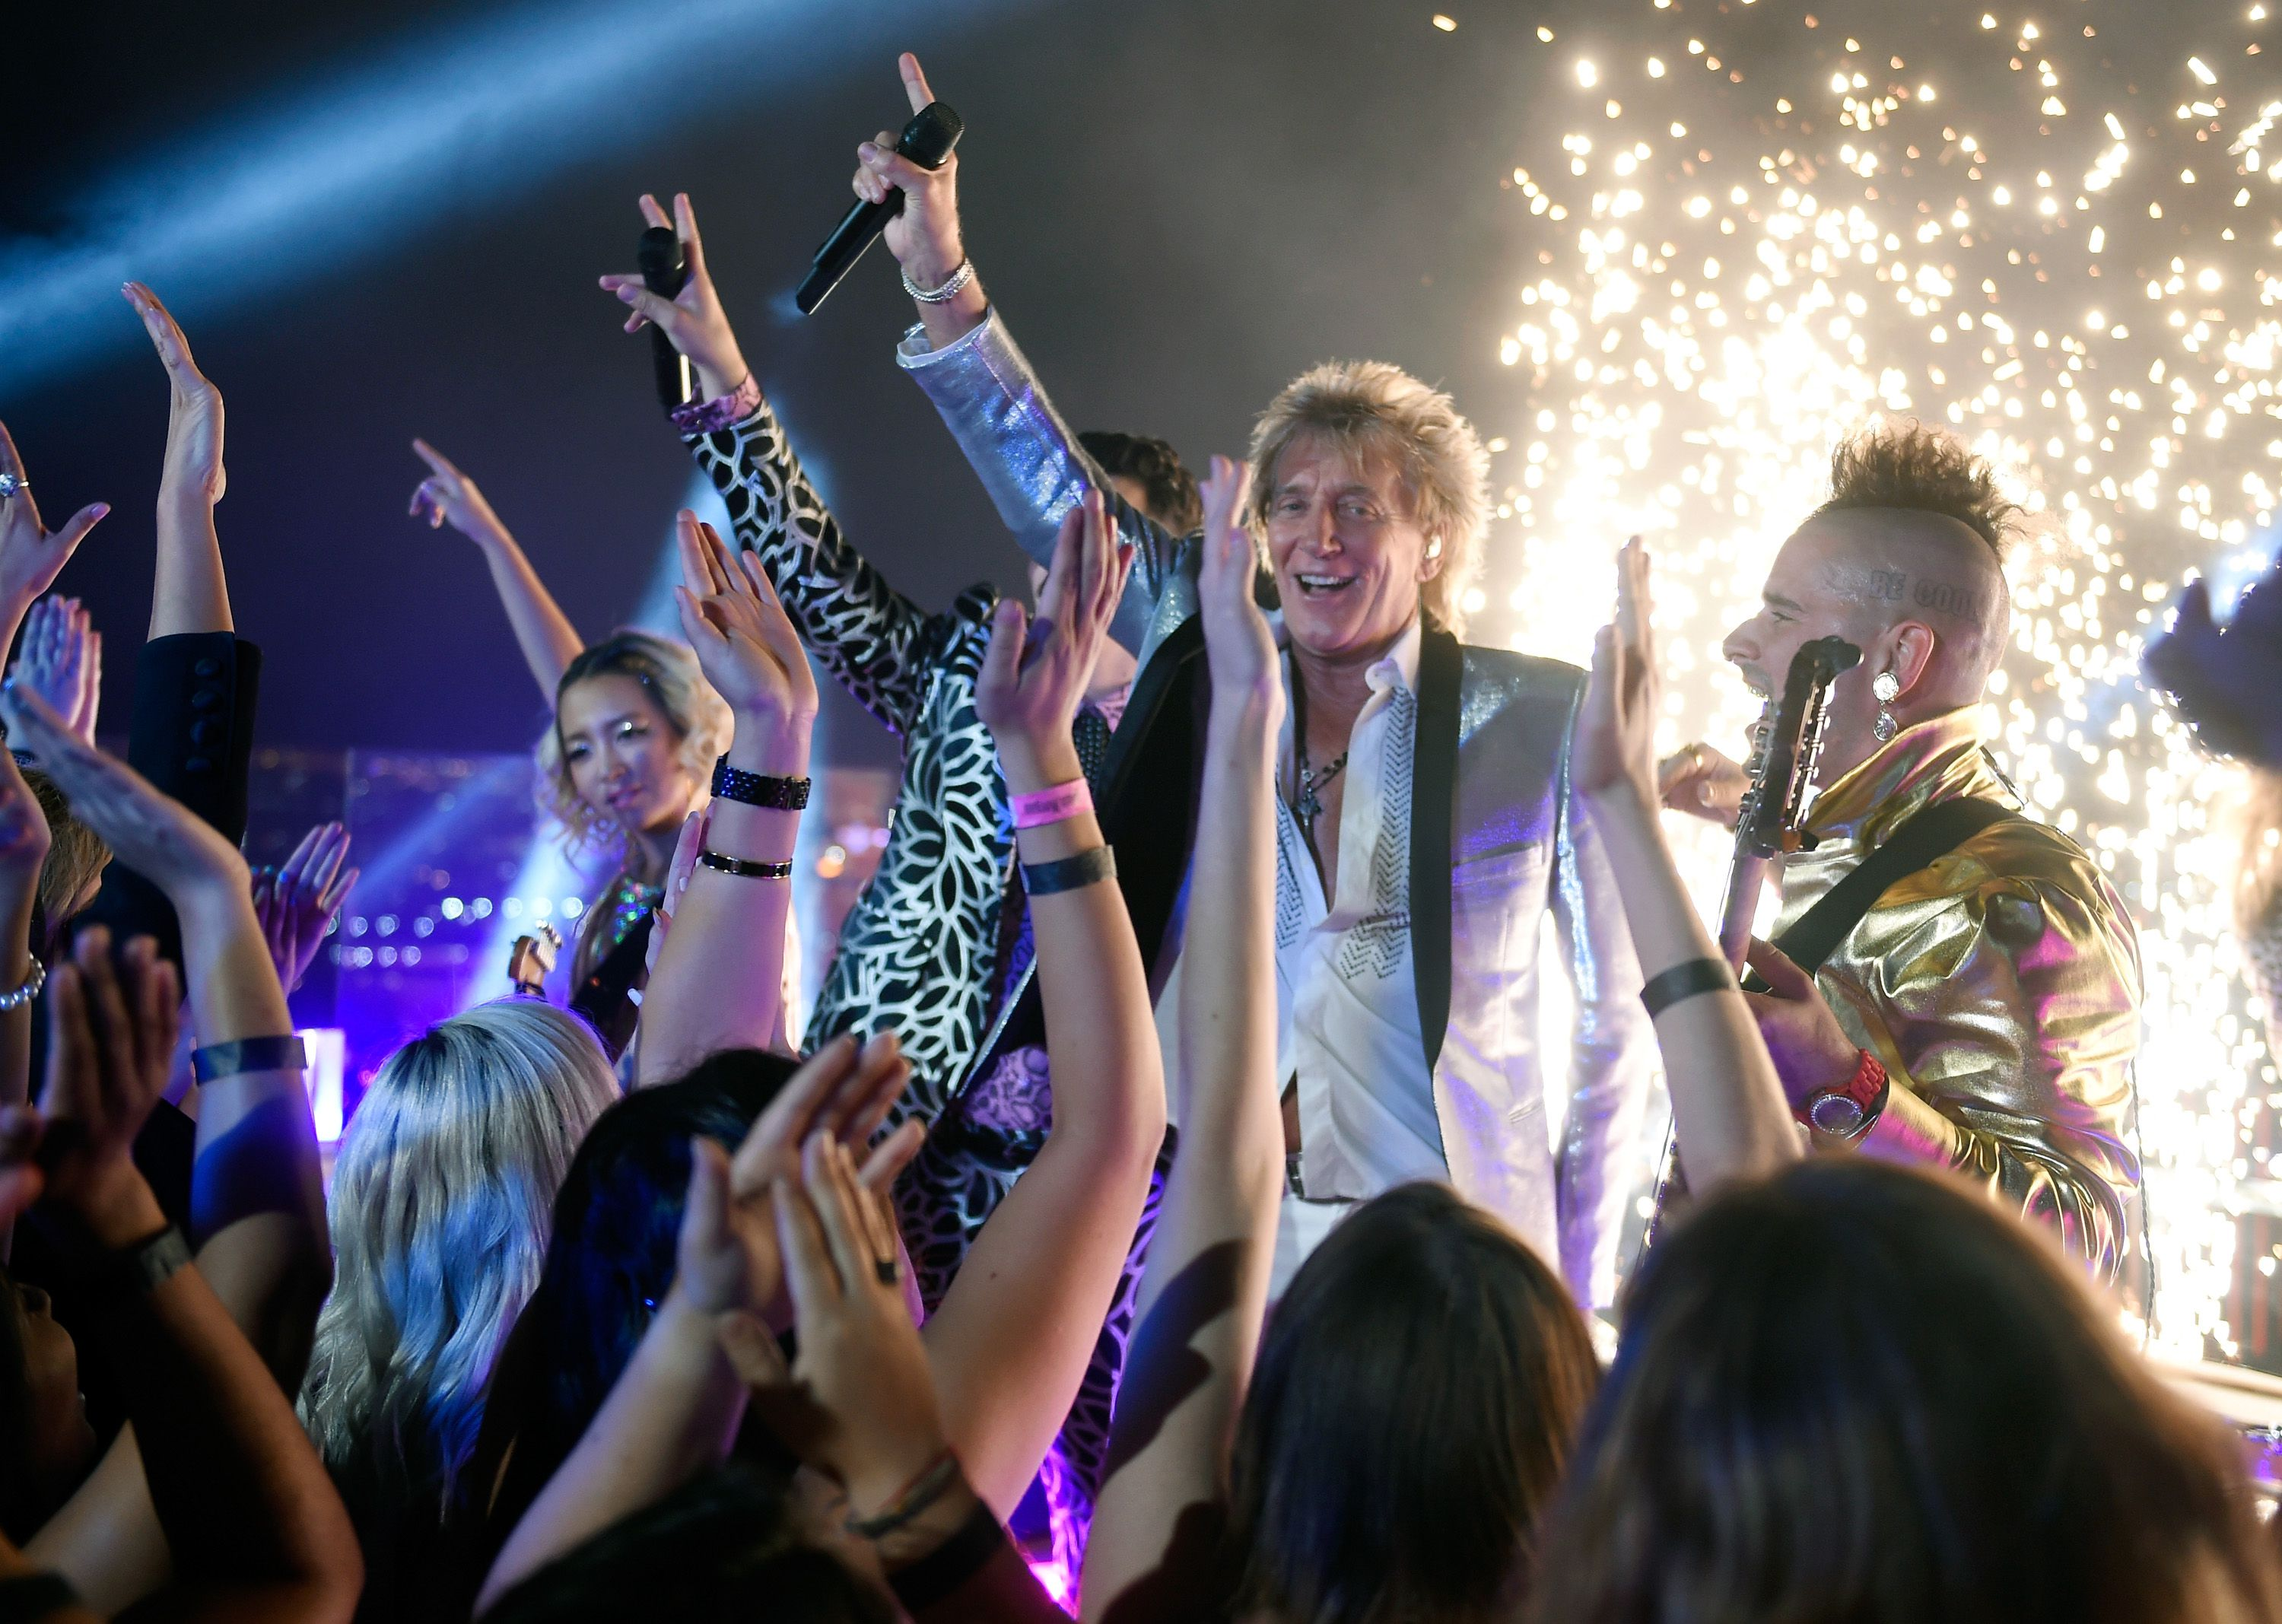 sir rod stewart and dnce perform from las vegas for the 2017 vmas 59f0dd4b6f53ba cc0